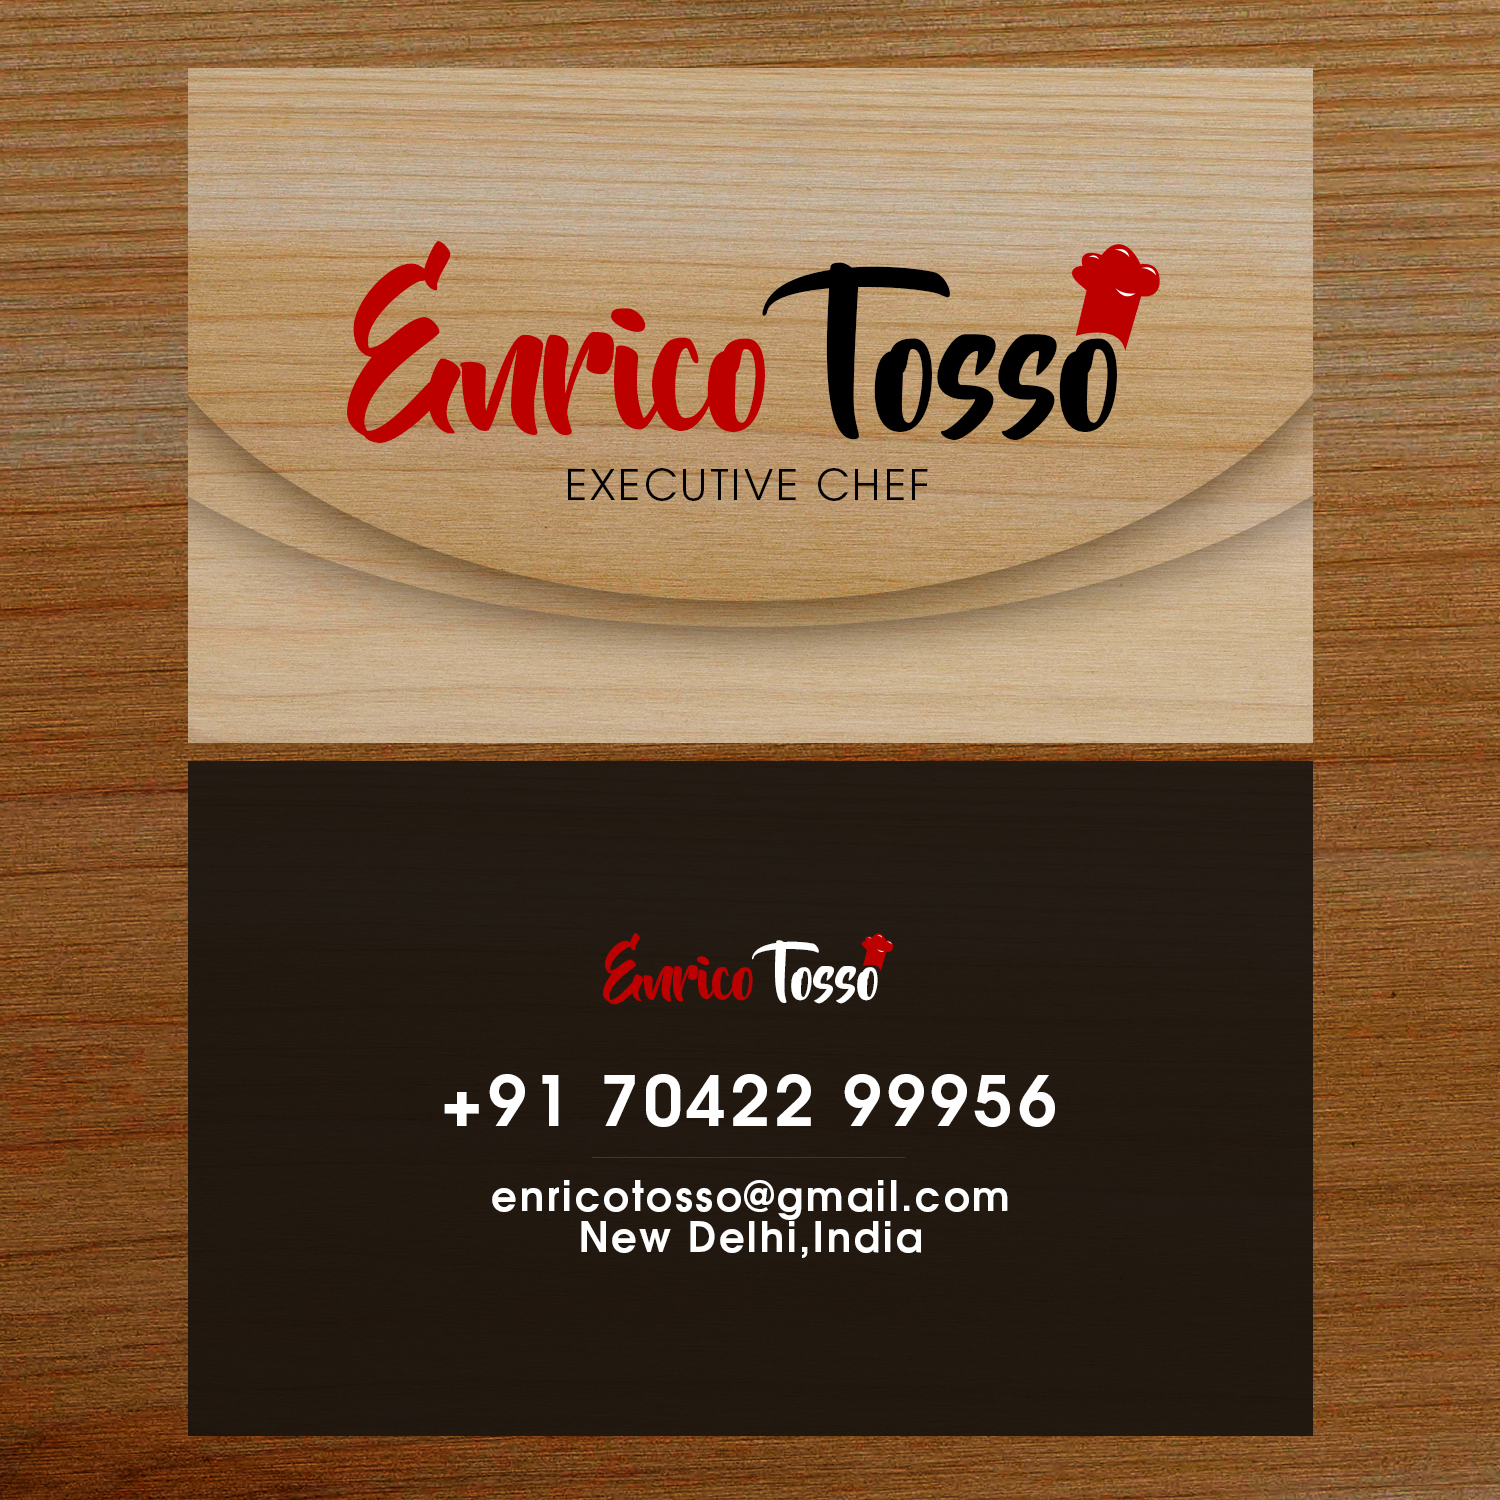 Elegant playful business card design for enrico tosso by club flyer business card design by club flyer studios for chef business card presentation card design reheart Image collections